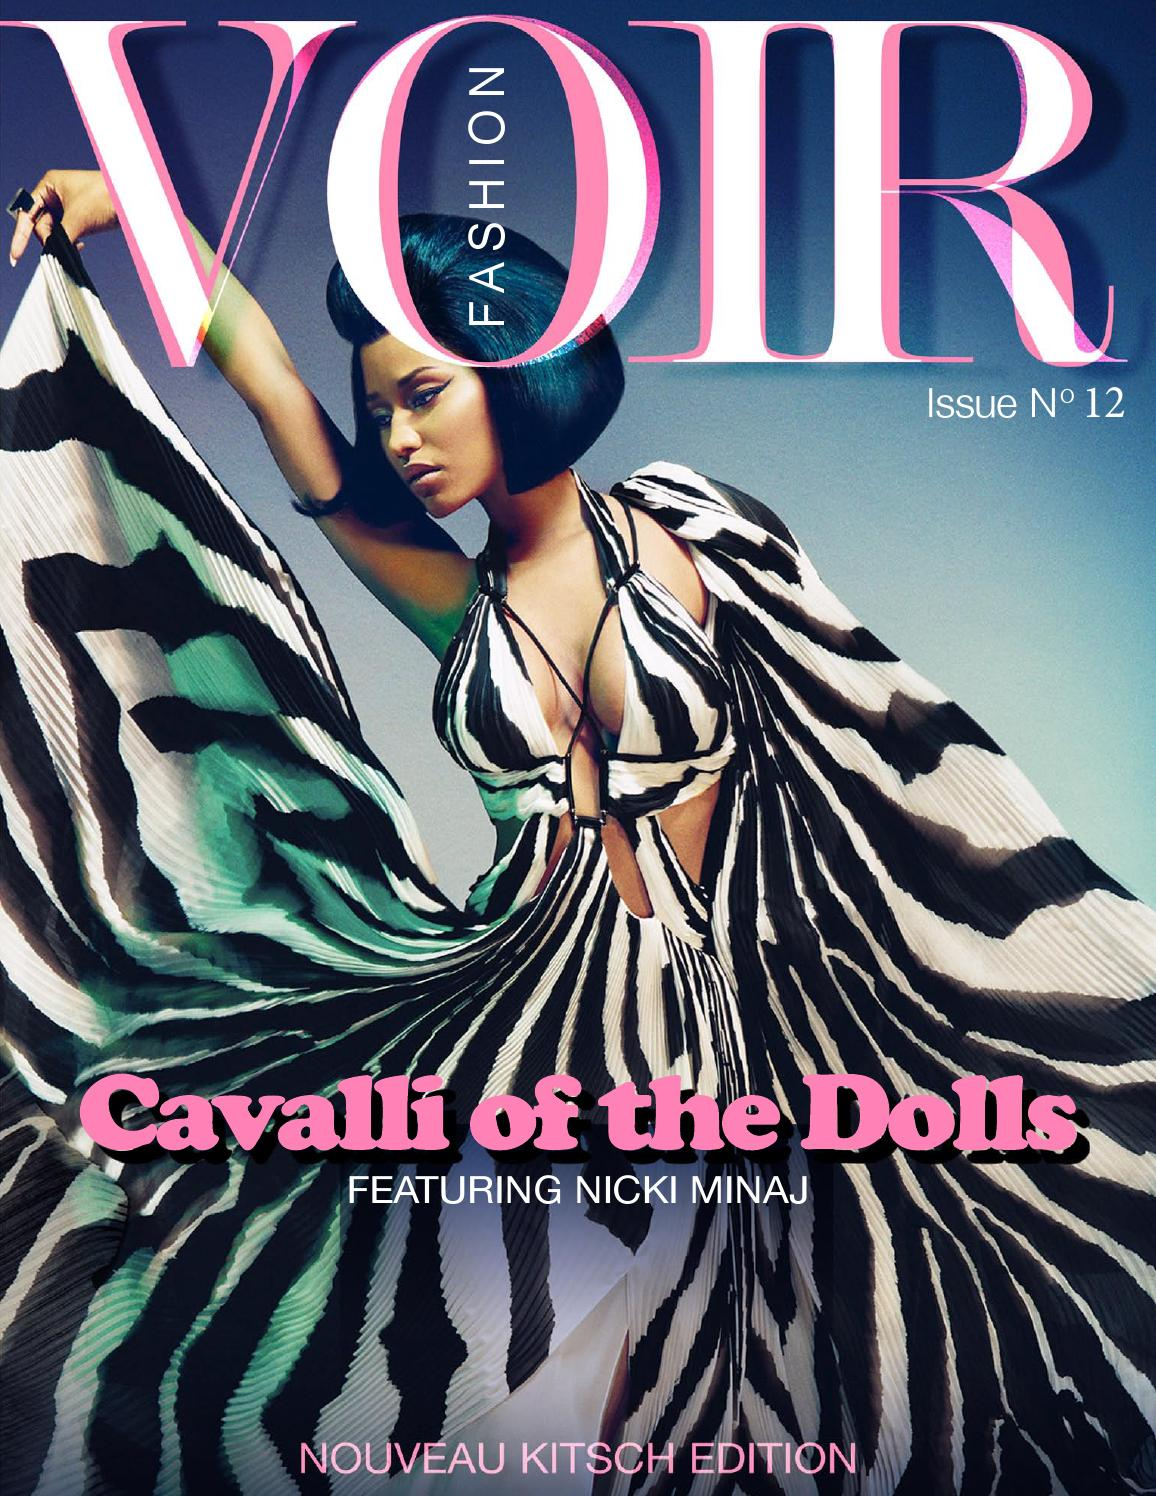 Fashion Magazines Look To Familiar Faces For Cover Models: Voir Fashion Issue 12 : Cavalli Of The Dolls